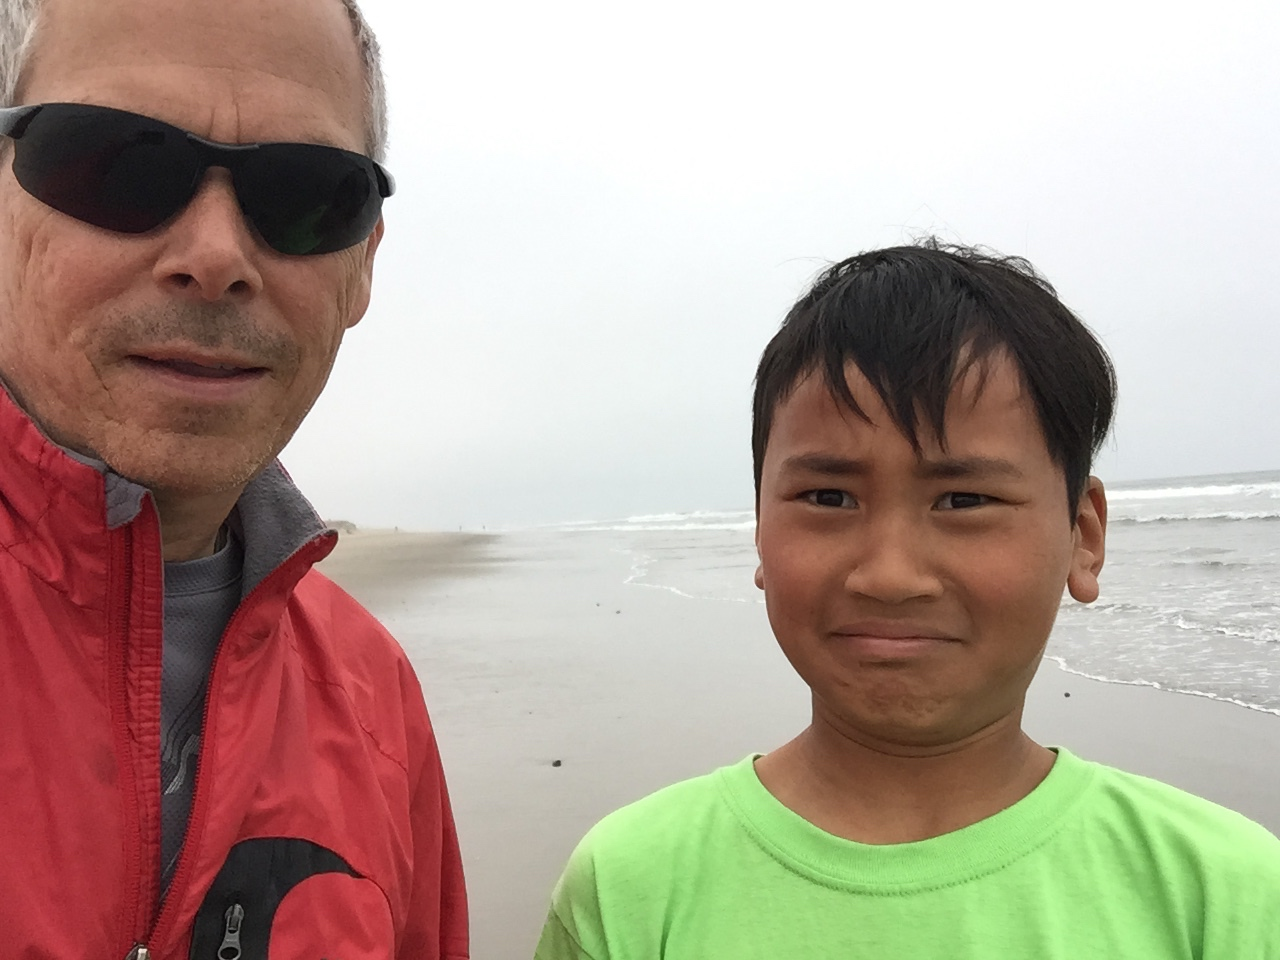 Two dudes on beach